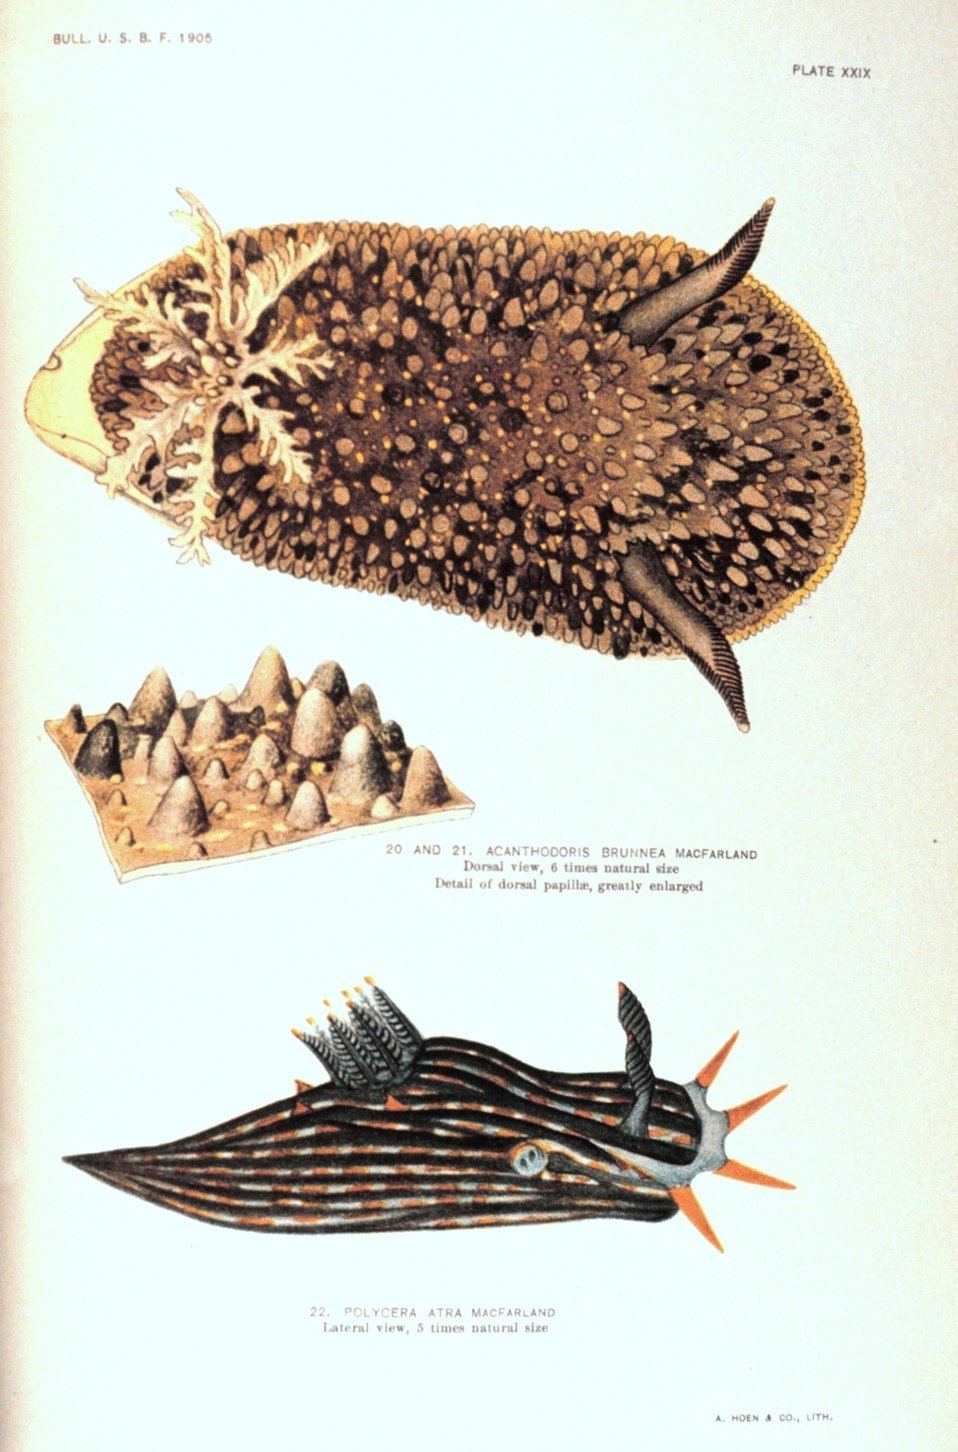 Nudibranchs.  20 and 21.  Acanthodoris brunnea MacFarland -Dorsal view and detail of dorsal papillae.  22.  Polycera atra MacFarland - lateral view. 20 and 21 painted by Anna B. Nash of the Hopkins Seaside Laboratory.  In: 'Opisthobranchiate Mollusca fr